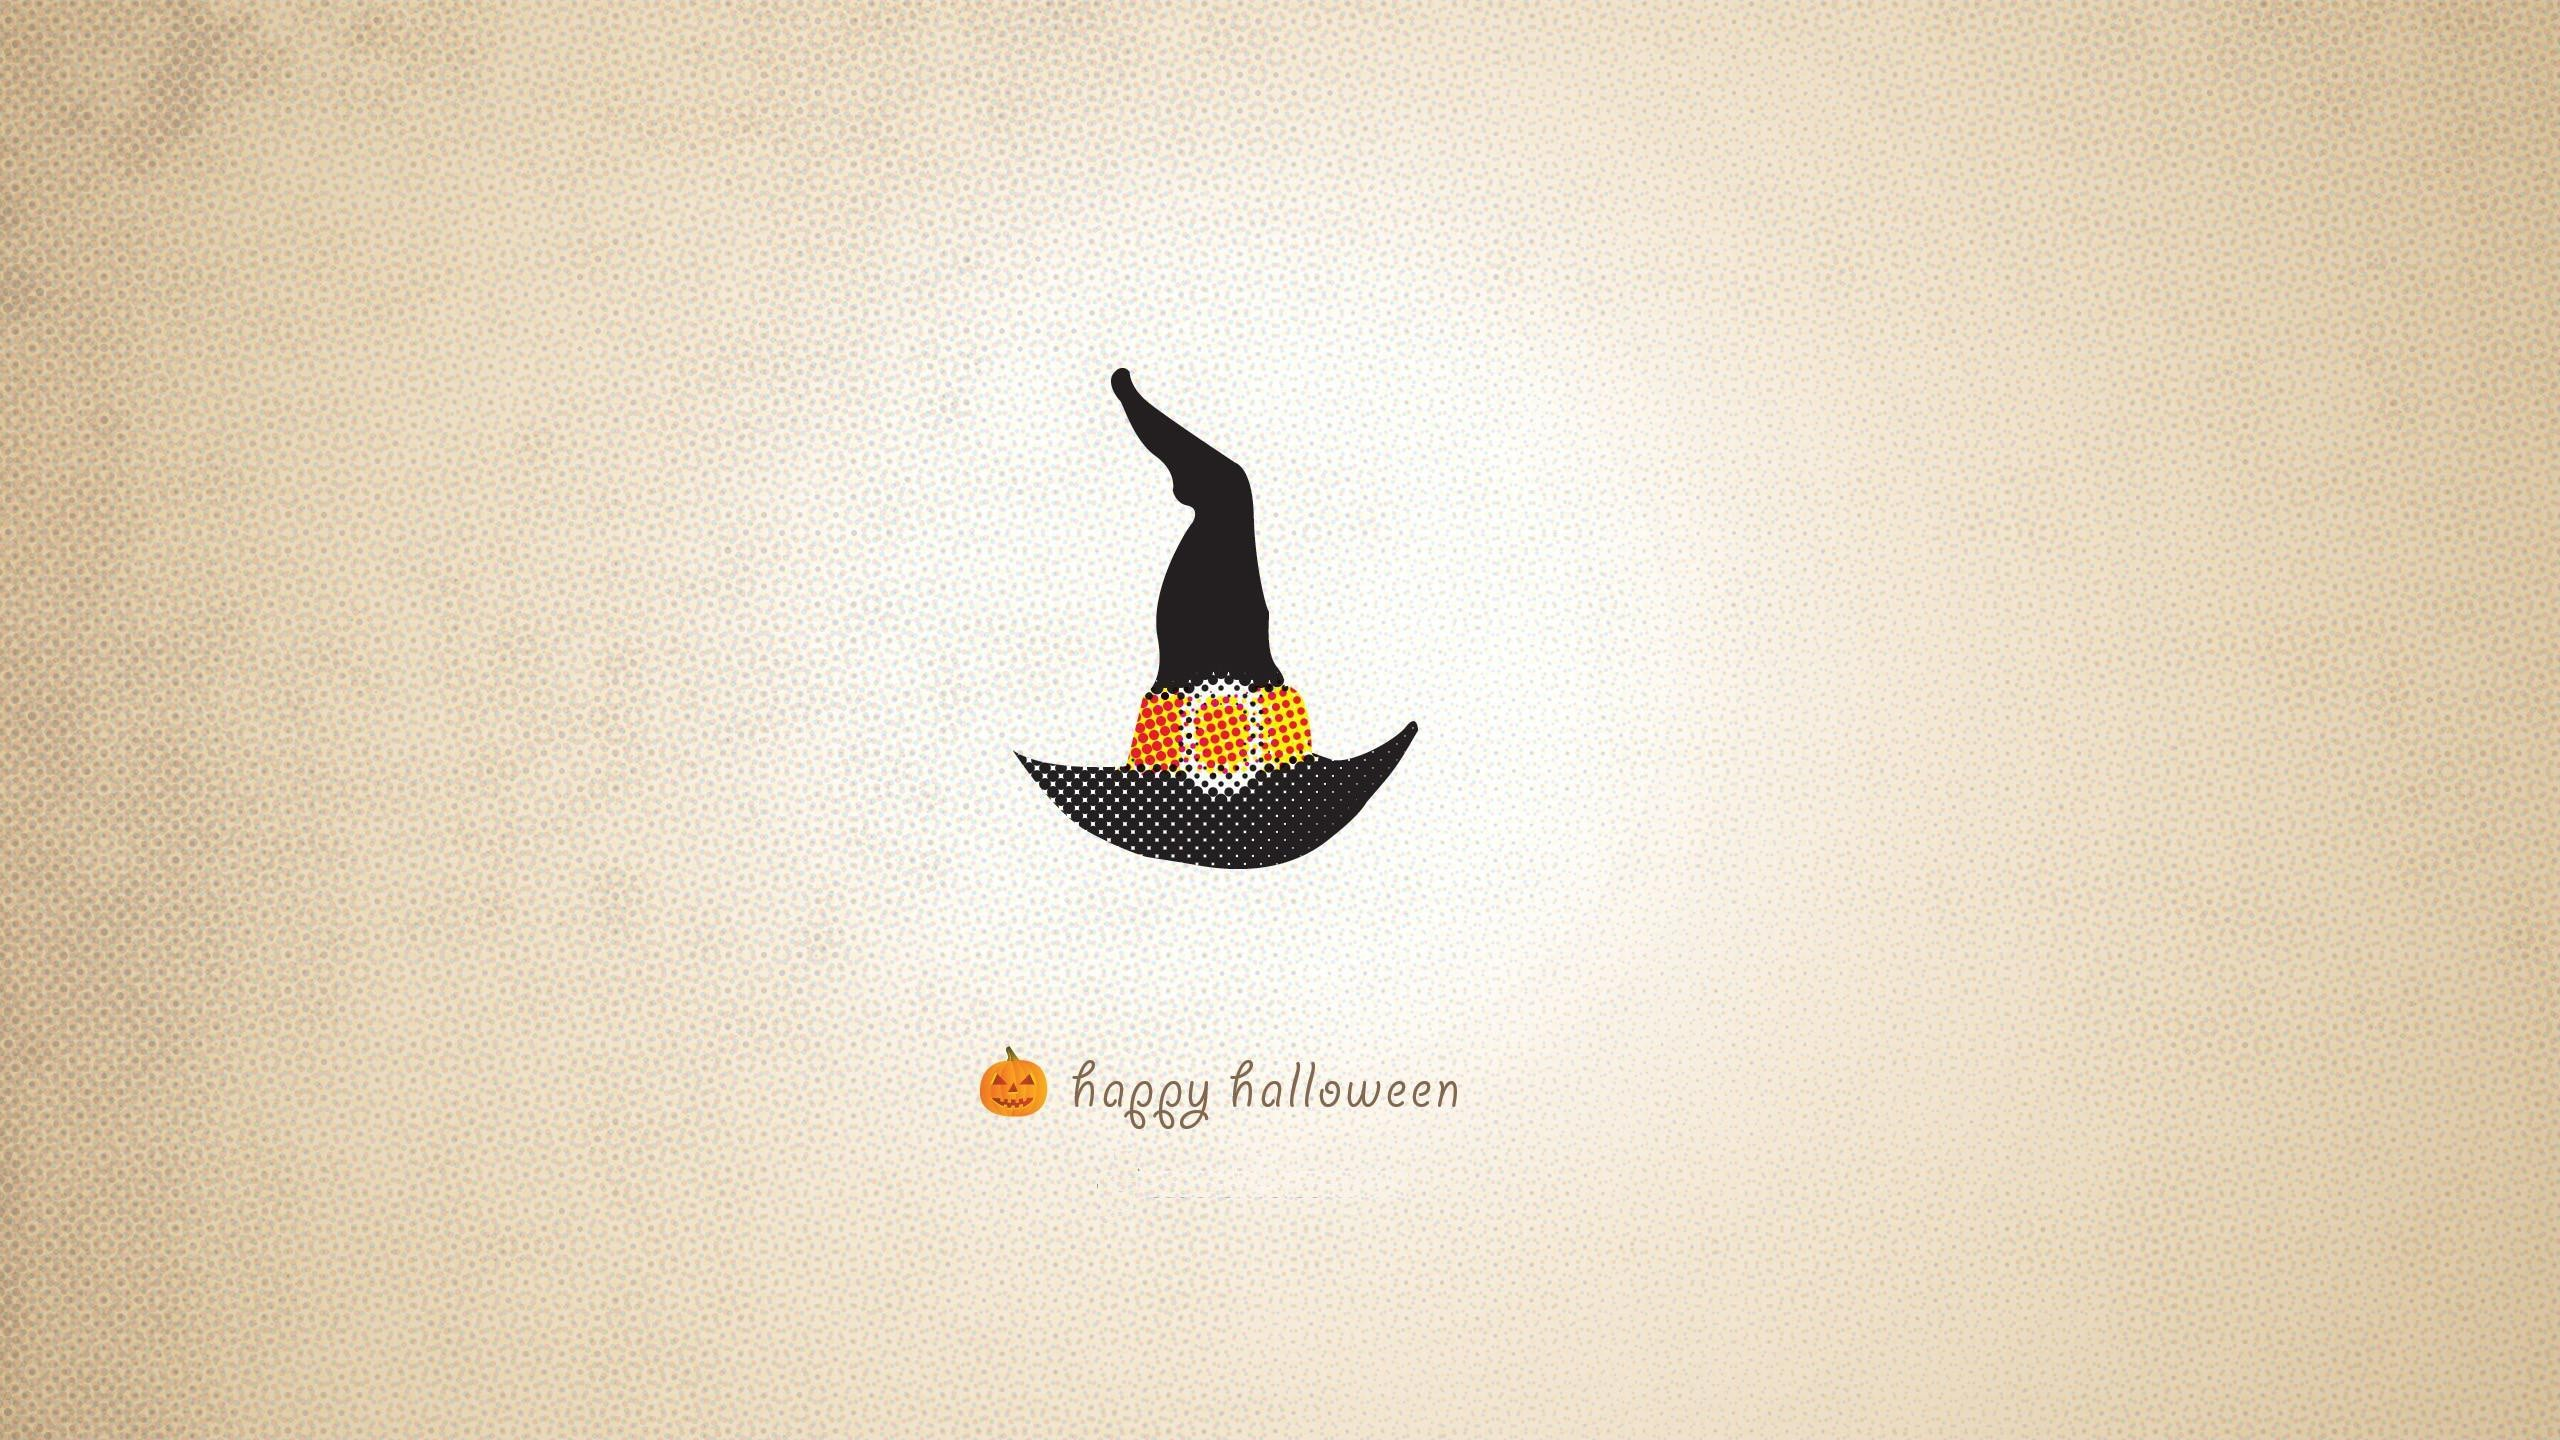 Vintage Halloween Witch Wallpaper Background Is Cool Wallpapers